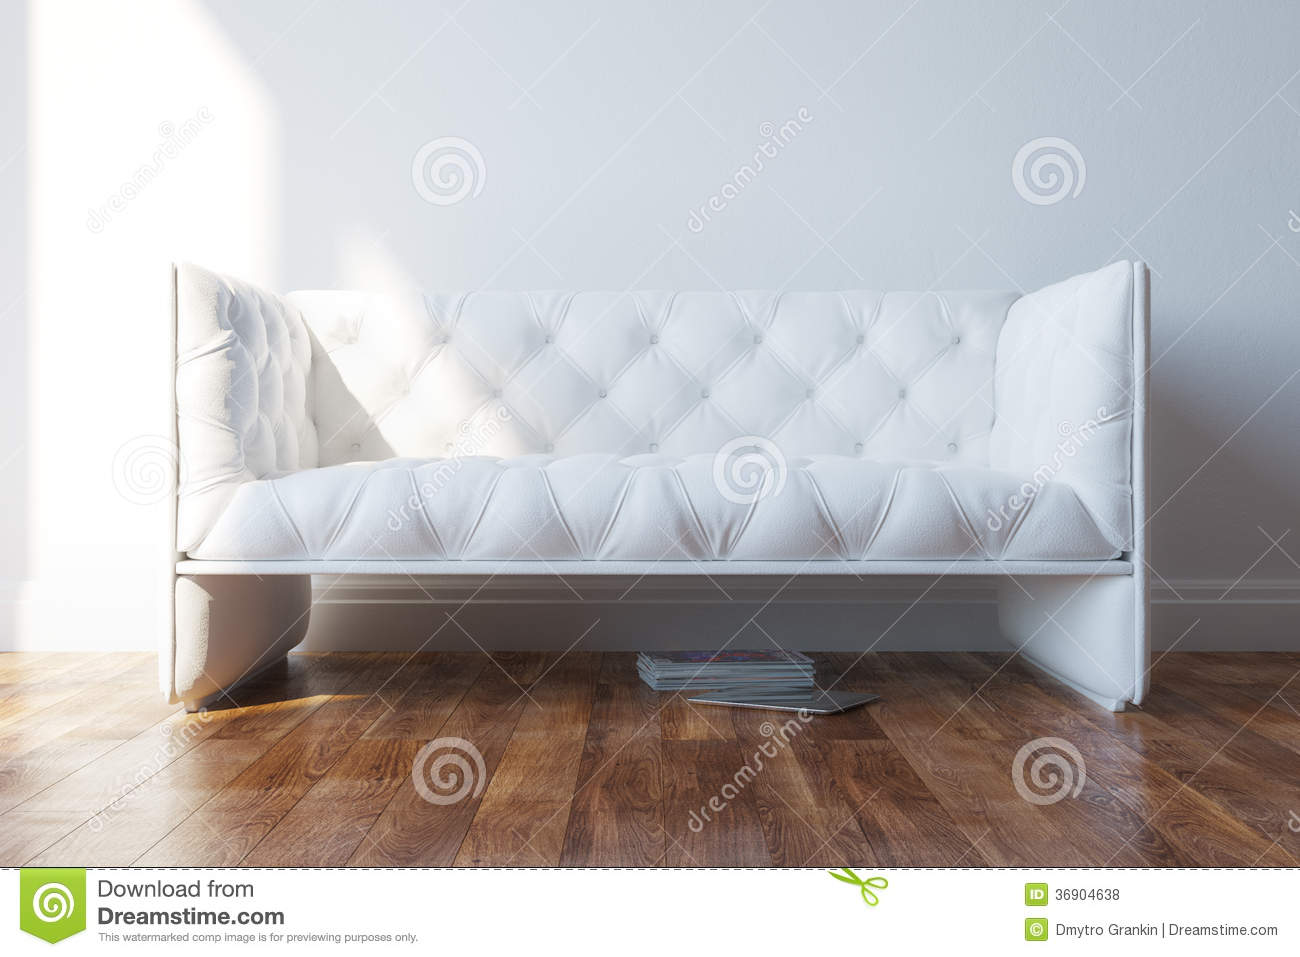 Vintage white design couch in minimalist interior royalty for Vintage minimalist interior design